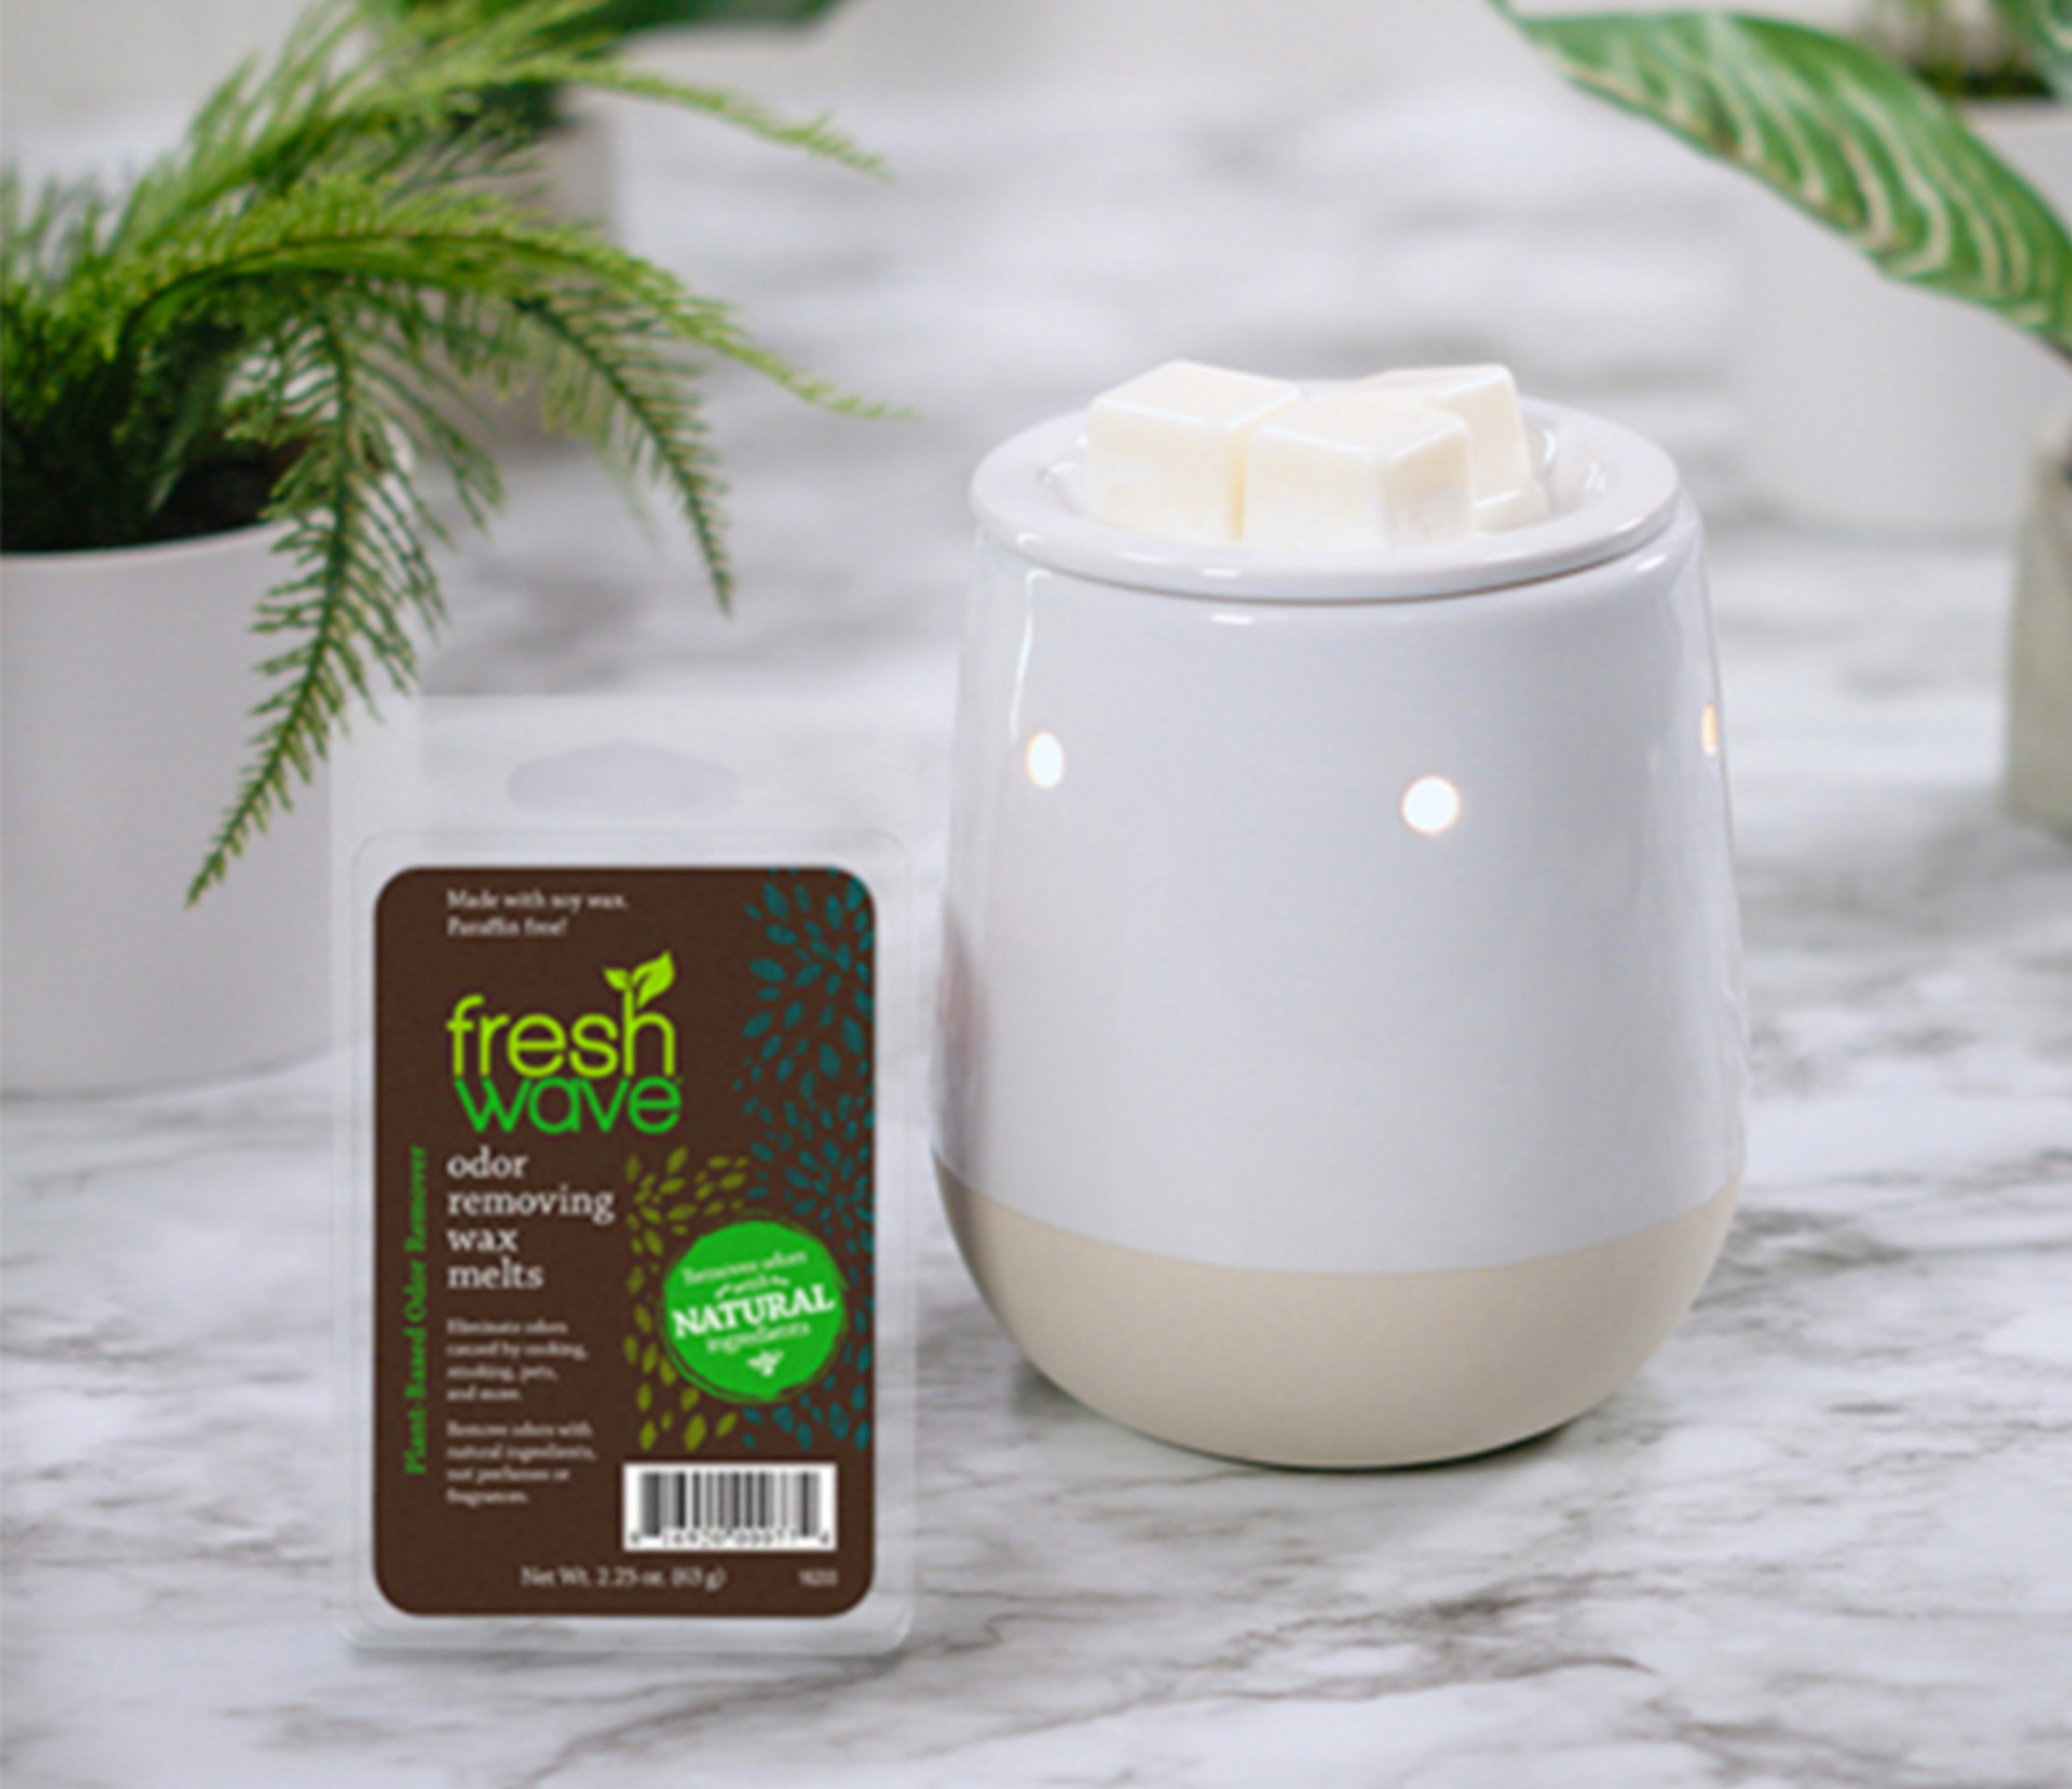 Fresh Wave Odor Removing Wax Melts Sitting Next to a Hot Wax Burner with Fresh Wave Wax Melts Burning on Top